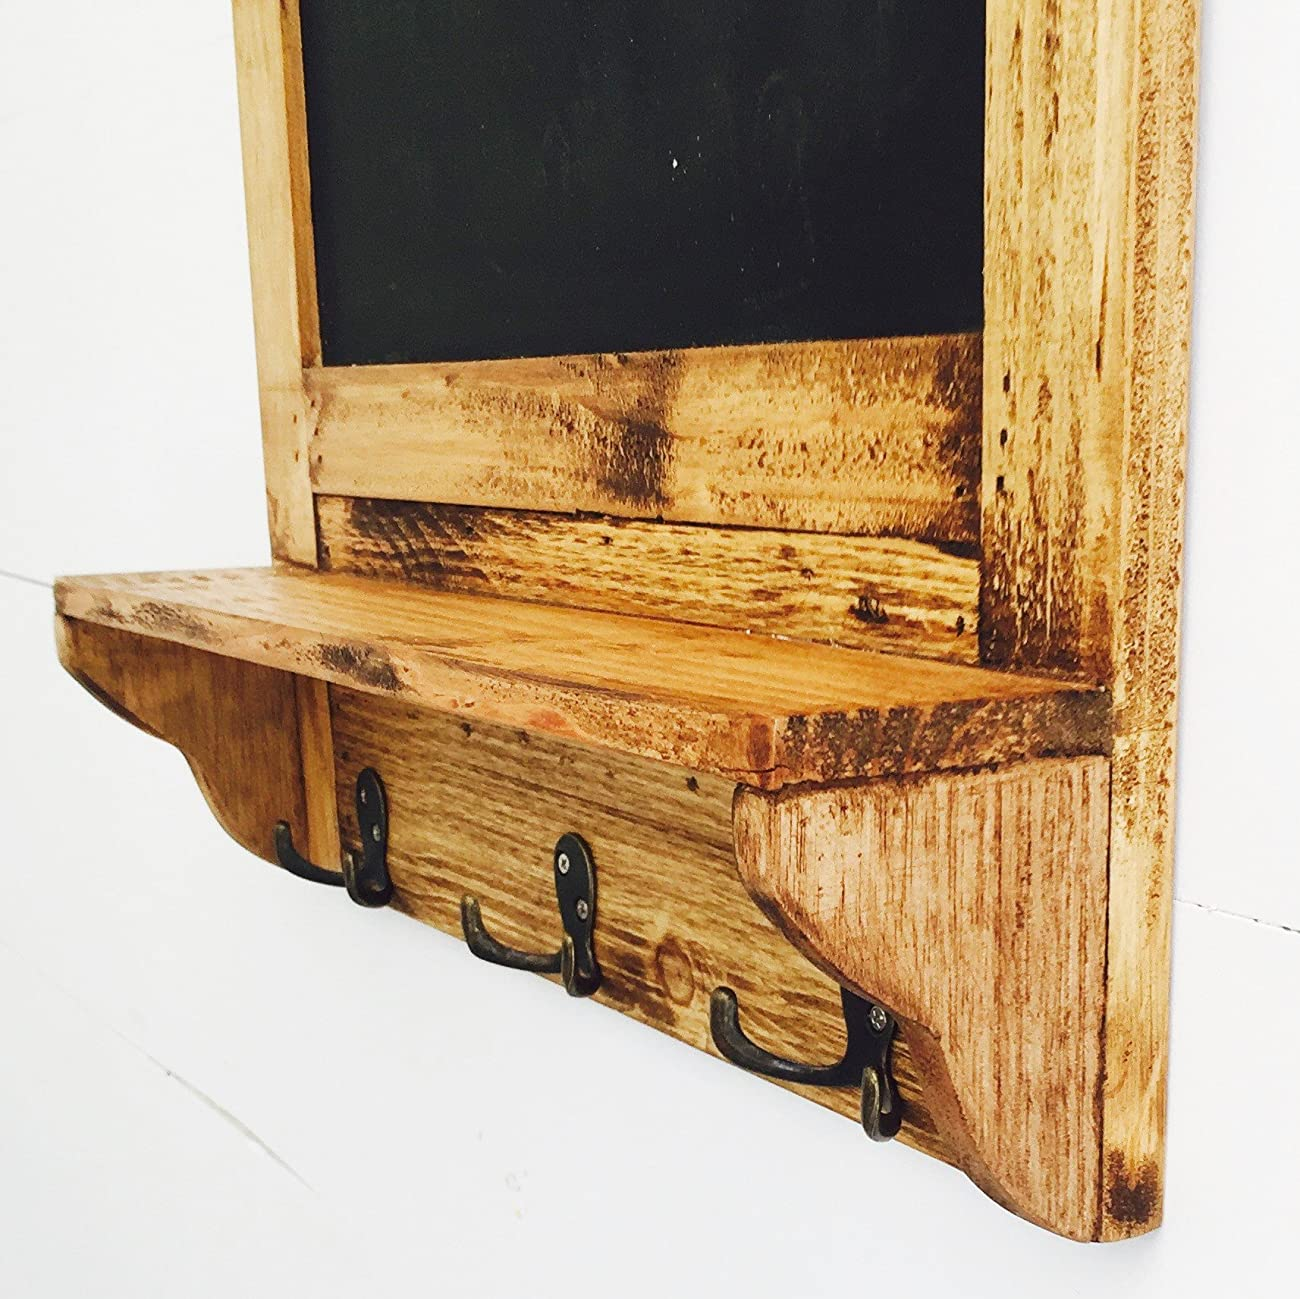 The Stockbridge Chalkboard with Shelf and Coat Hooks, Rustic Pine, Natural Color Wood with Vintage Style Distressed Finish, Brass Hardware, 3 7/8 D x 17 ¾ W x 28 ¼ H Inches, By Whole House Worlds 5